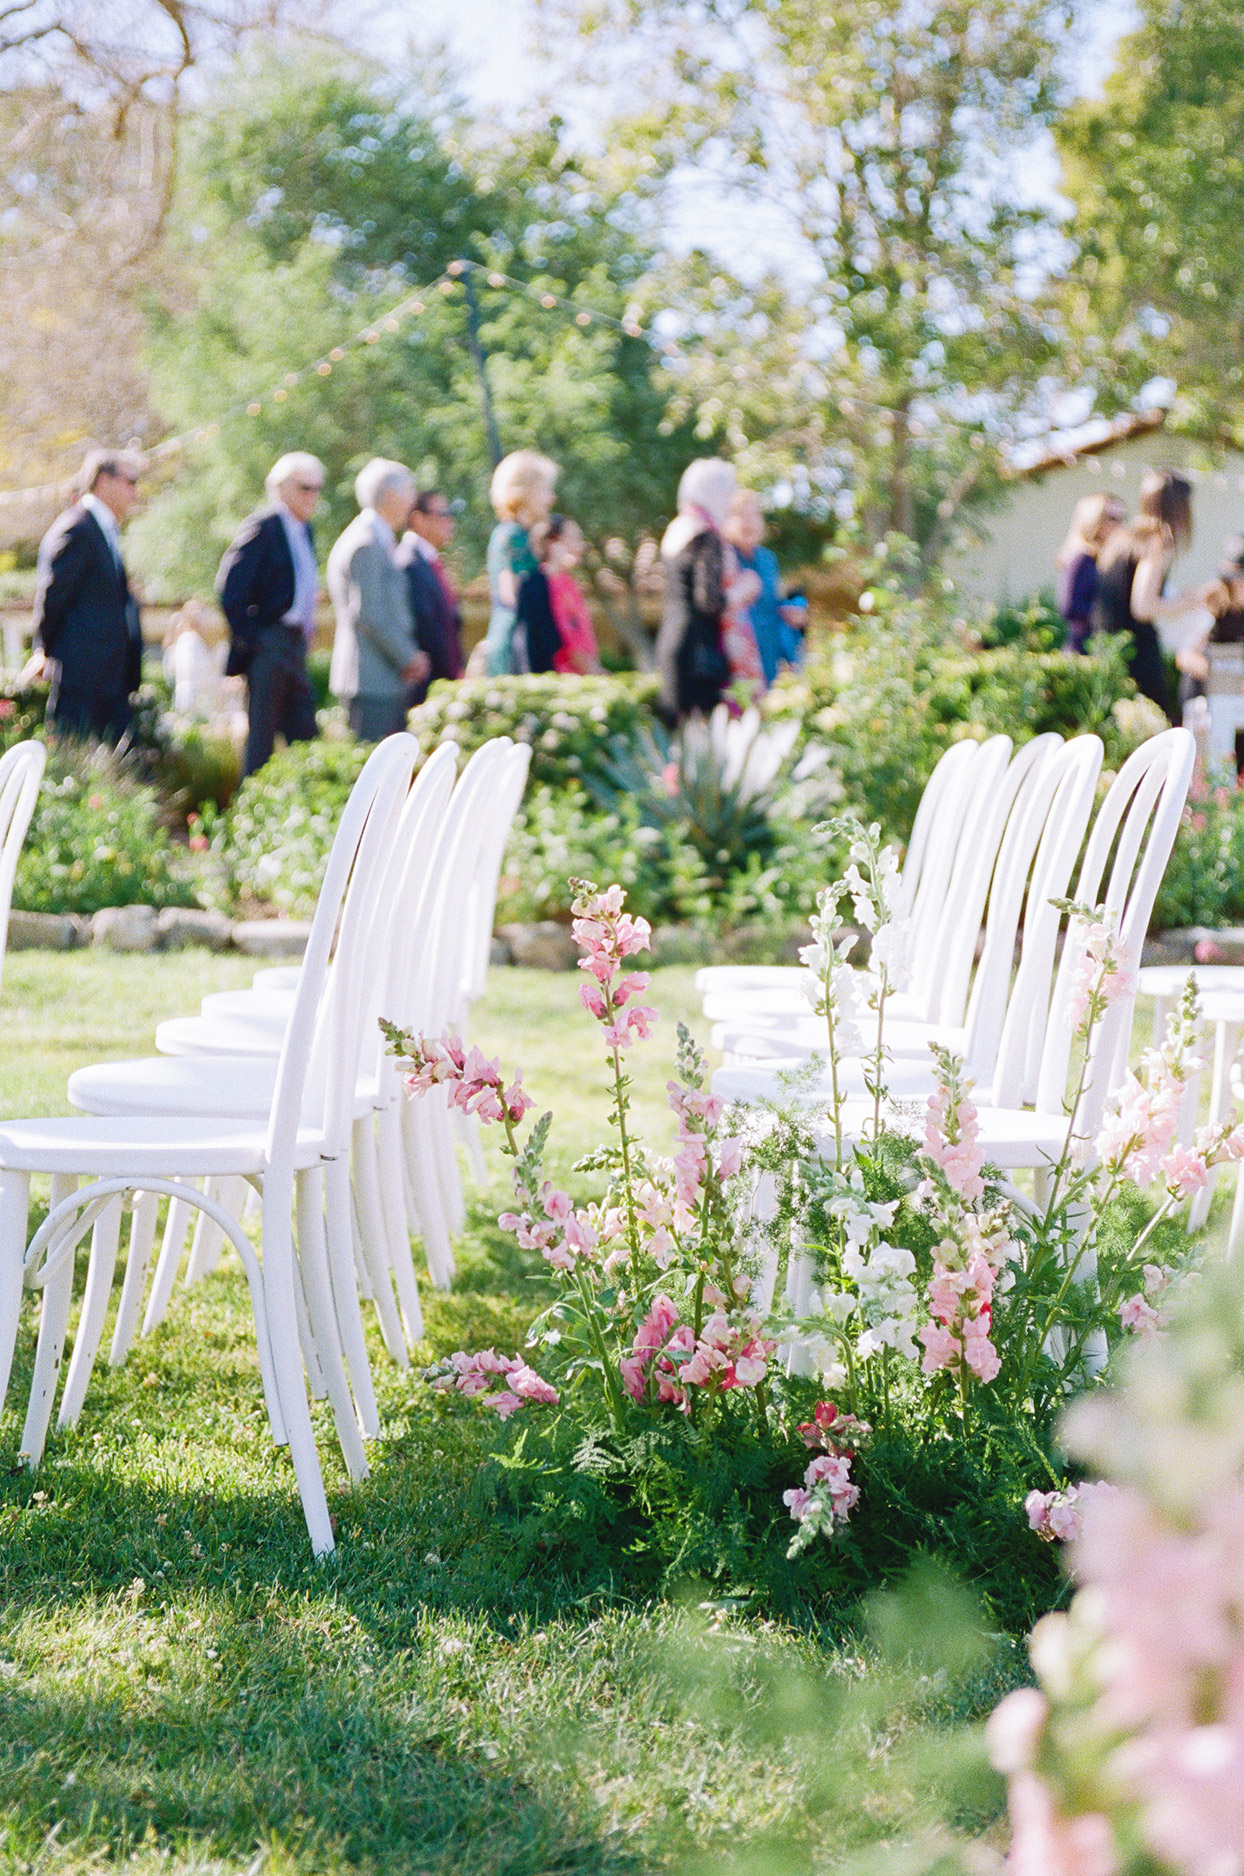 Chairs set up for an outdoor wedding ceremony